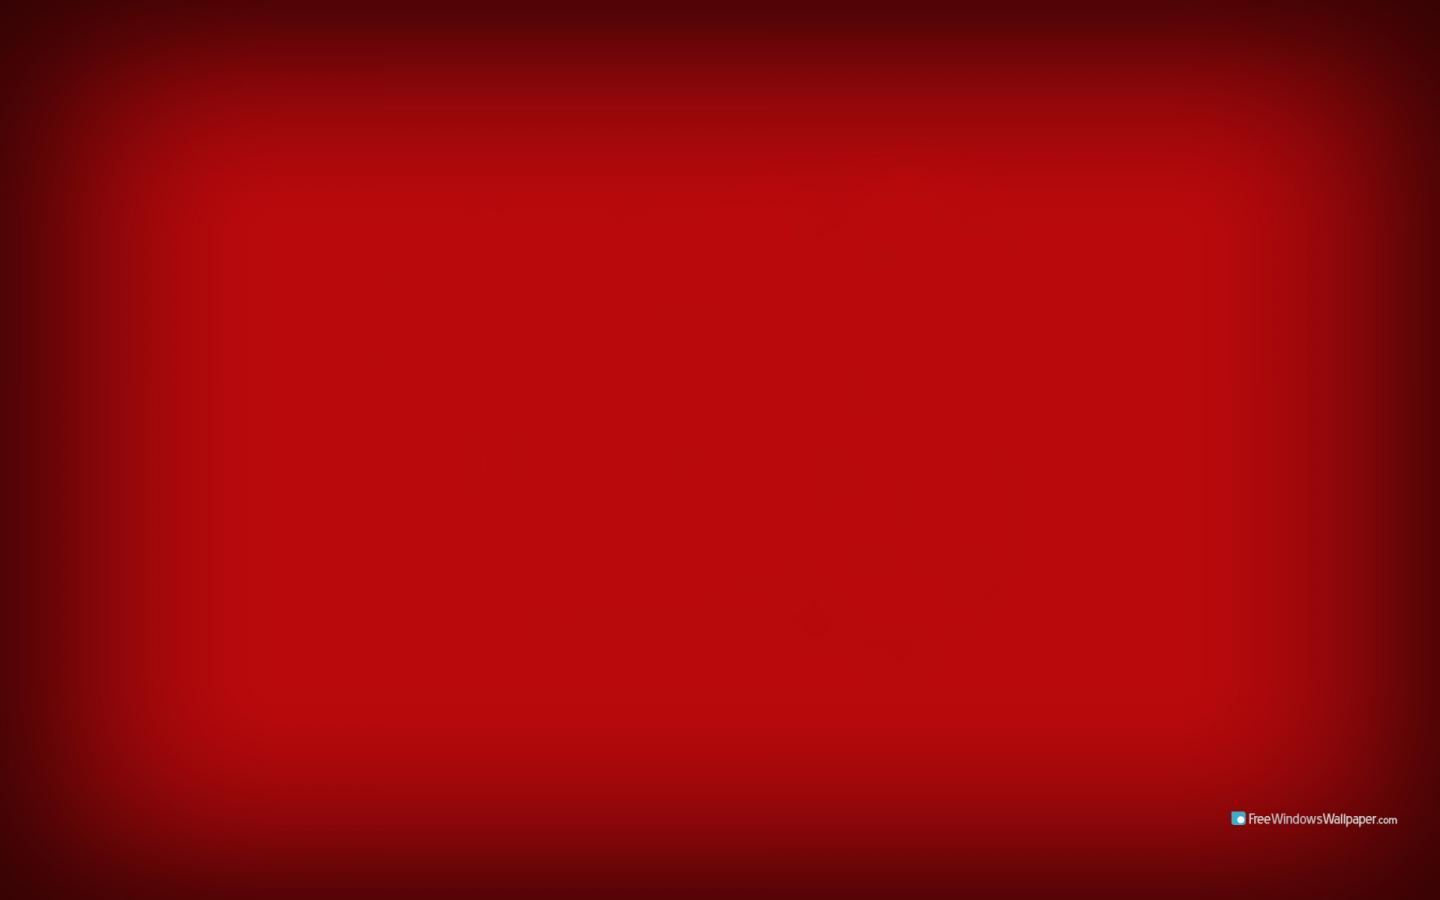 1440x900 Red Computer Wallpaper Solid Red Wallpaper 1440x900